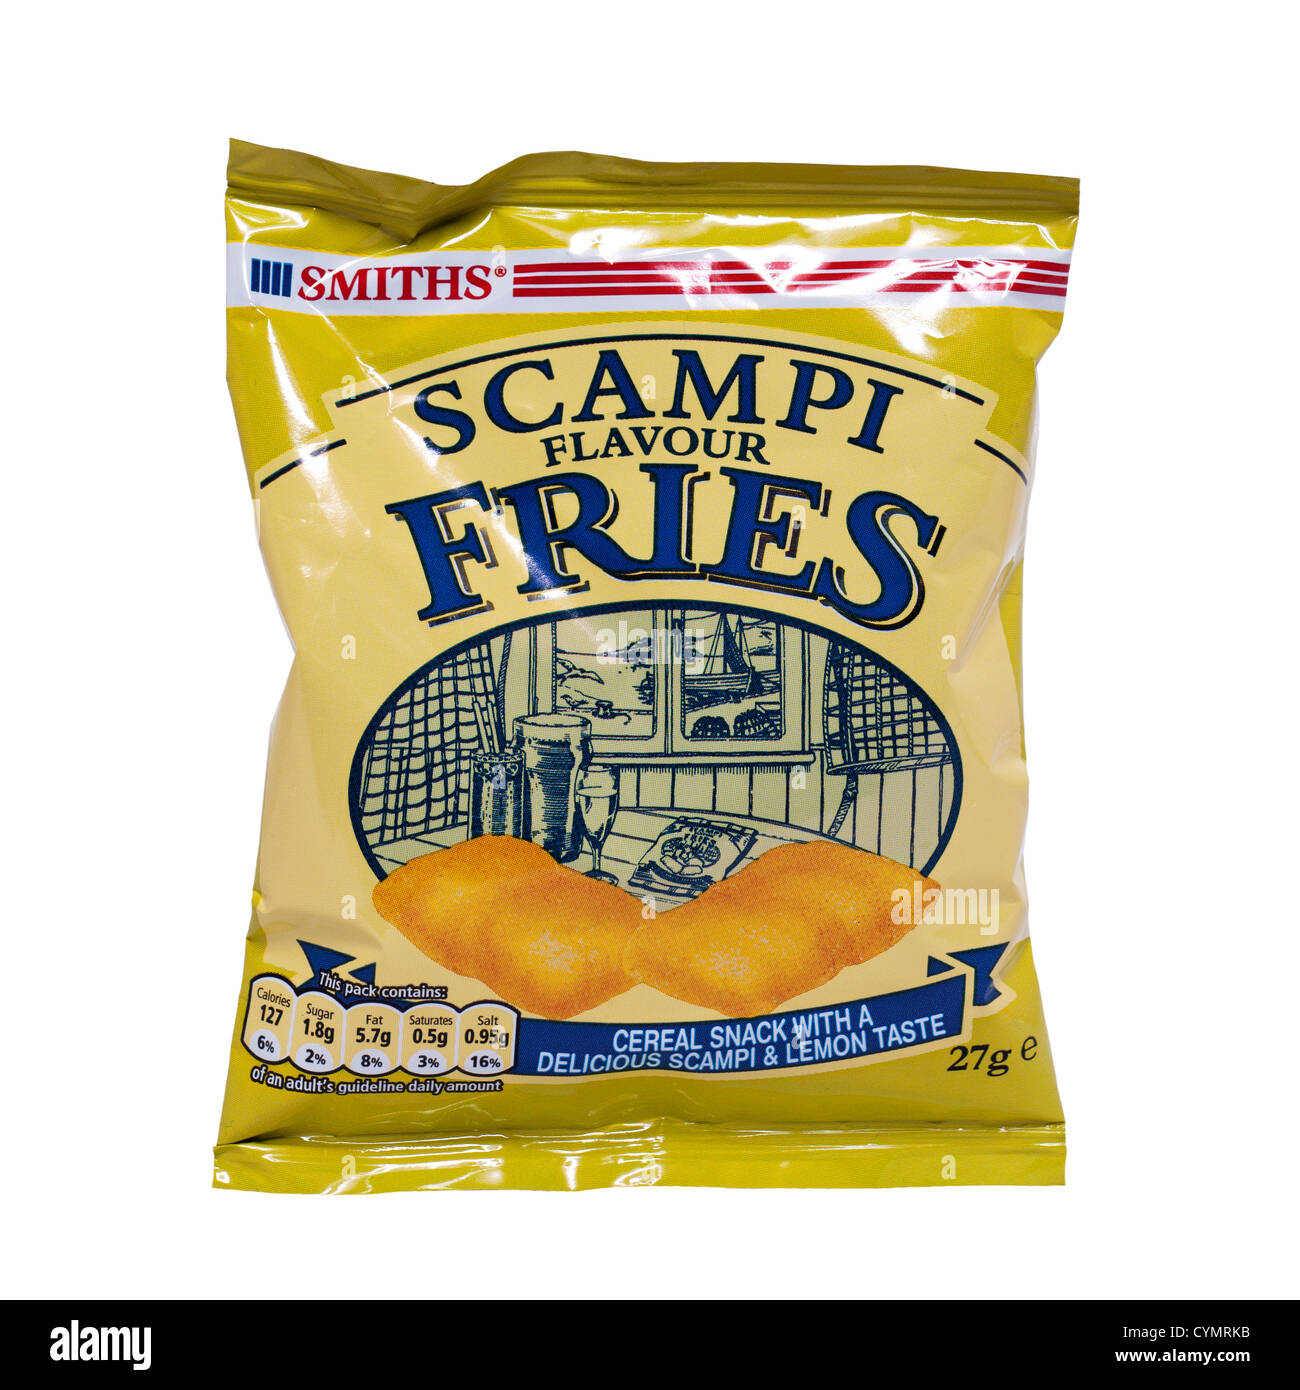 A packet of Smiths Scampi flavour Fries on a white background - Stock Image